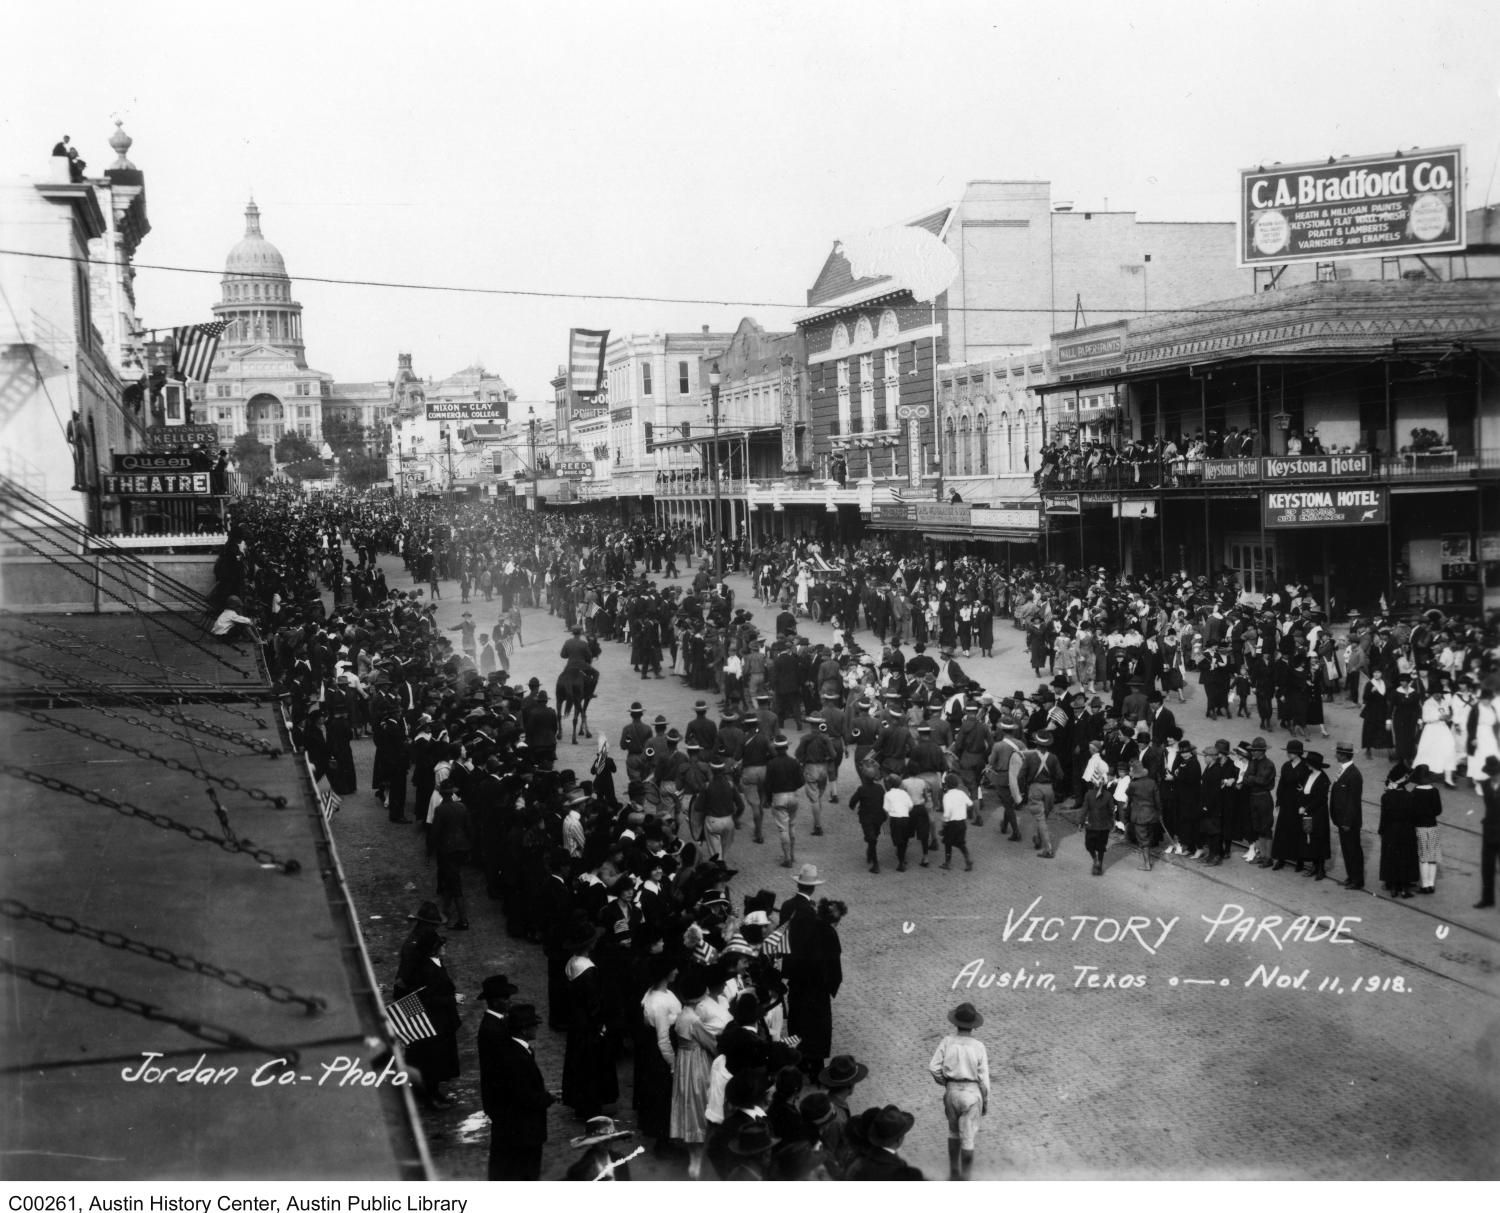 November 11 1918 armistice day parade austin texas for Jewelry stores in texas